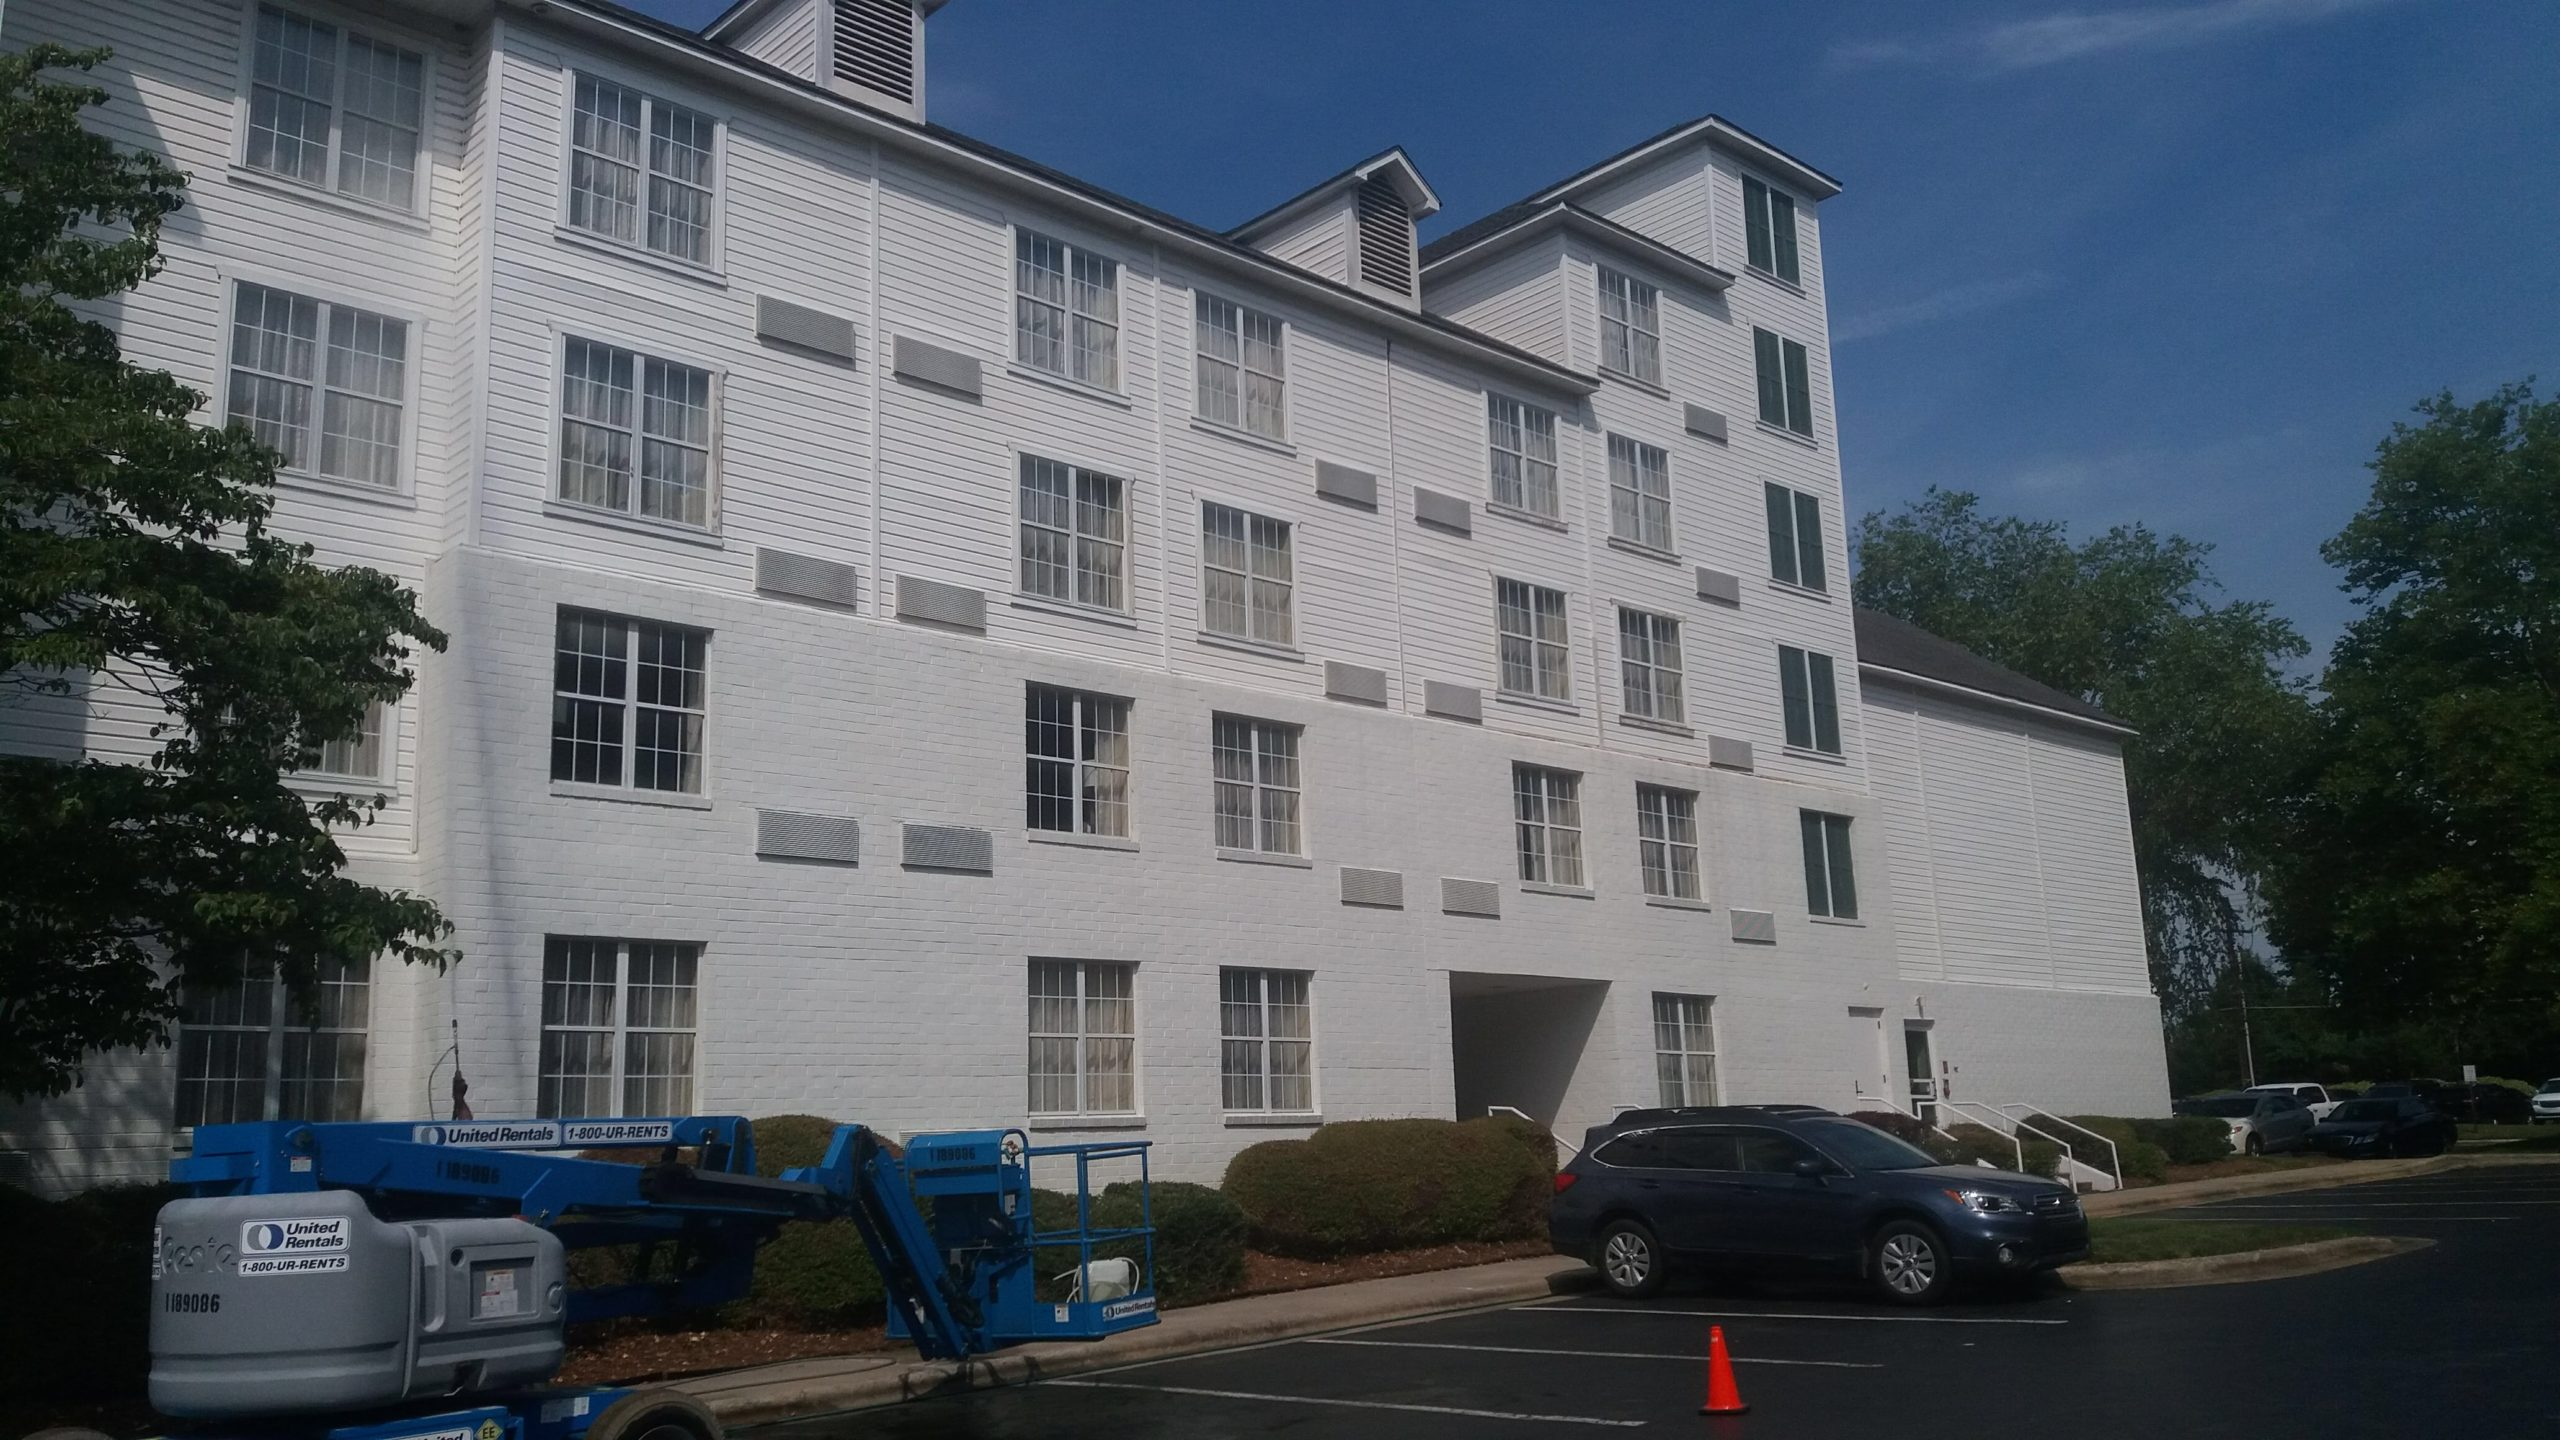 First impressions of your building make a difference in how potential tenants perceive an apartment building. By having the building cleaned and maintained properly it can make an impact on how many units sit empty. With over 15 years of experience in the pressure washing industry, we are dedicated to providing the highest possible standards of quality and safety on all of the projects we undertake. We Guarantee our work and strive for 100% Customer Satisfaction at all times. We have been serving Raleigh by cleaning Multi Unit Properties, Apartment, Condominium and Townhome Complexes and we know how to remove the toughest stains safely and quickly.